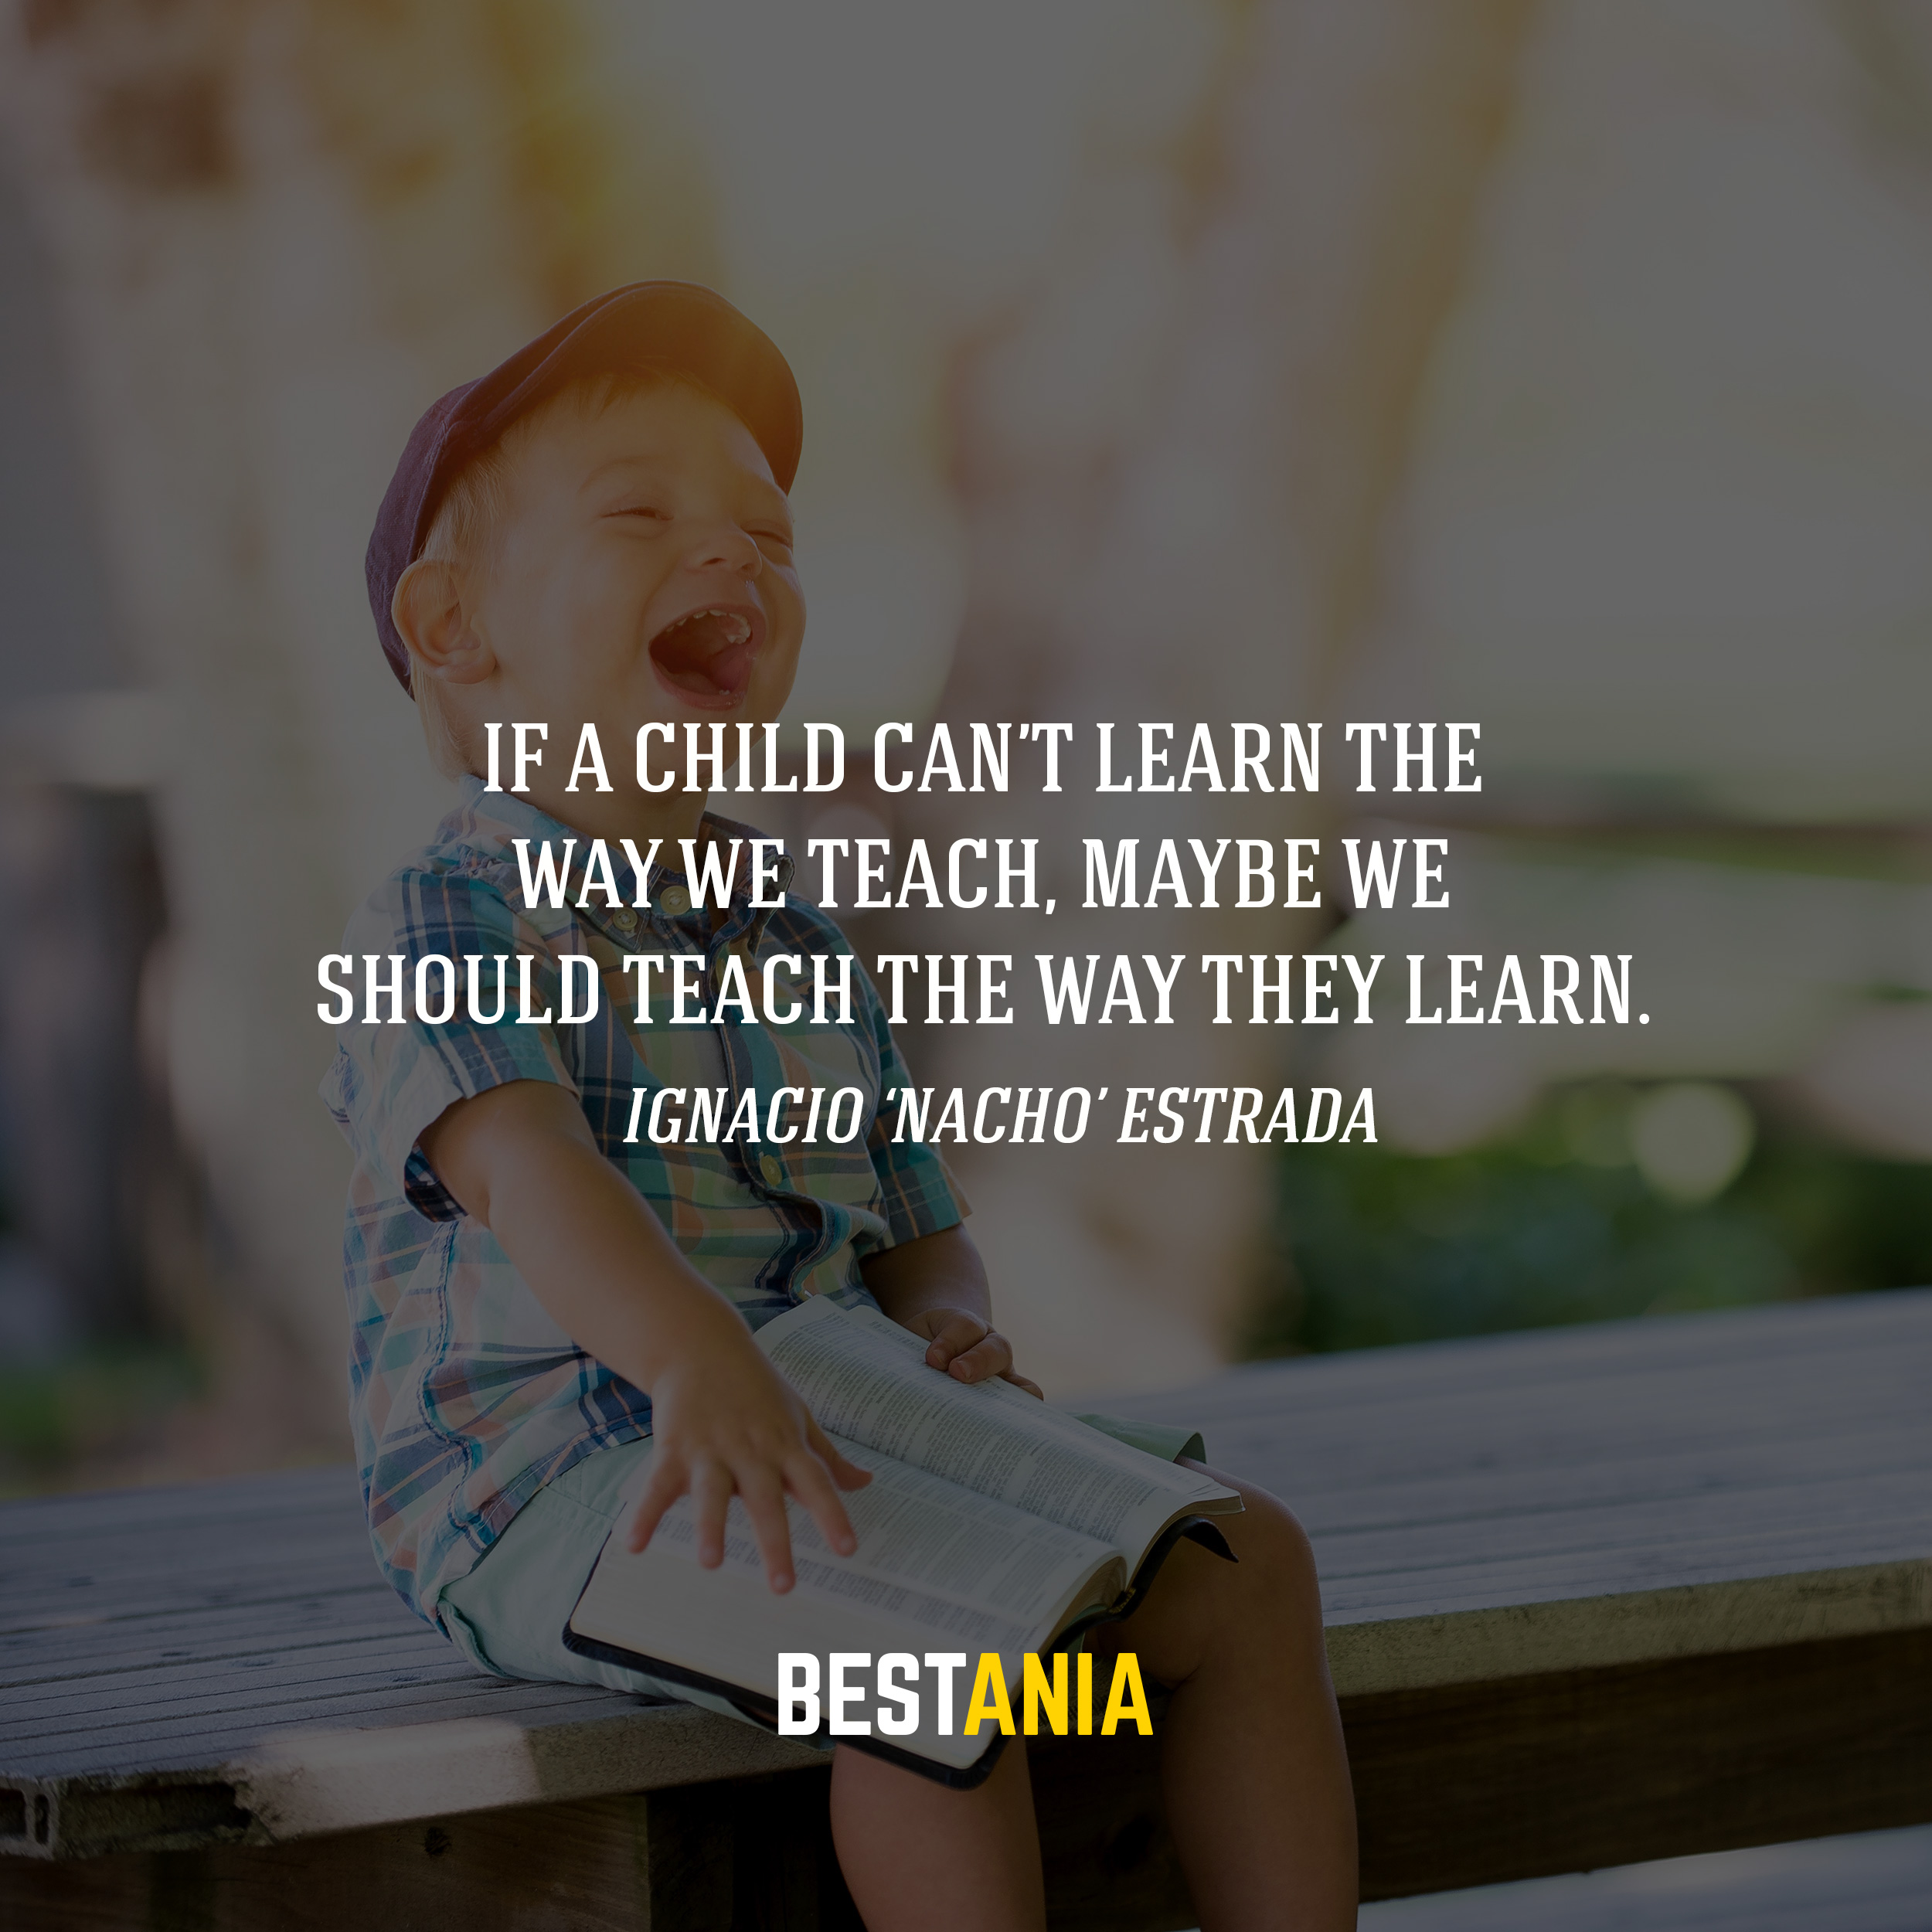 If a child can't learn the way we teach, maybe we should teach the way they learn. -Ignacio 'Nacho' Estrada